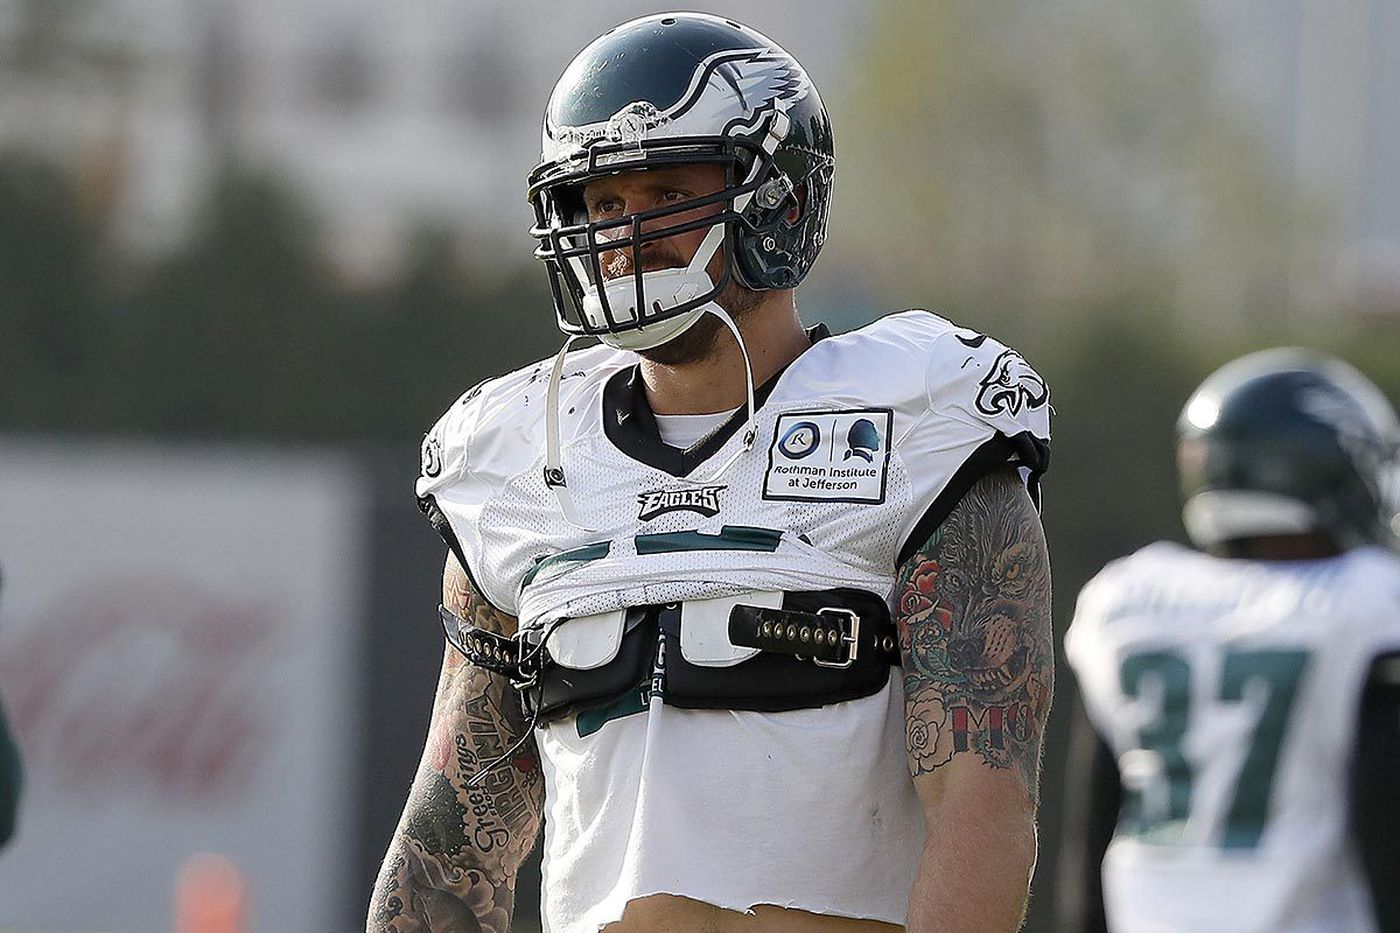 Eagles' Chris Long to donate first six game checks to fund scholarships in Charlottesville, Va.